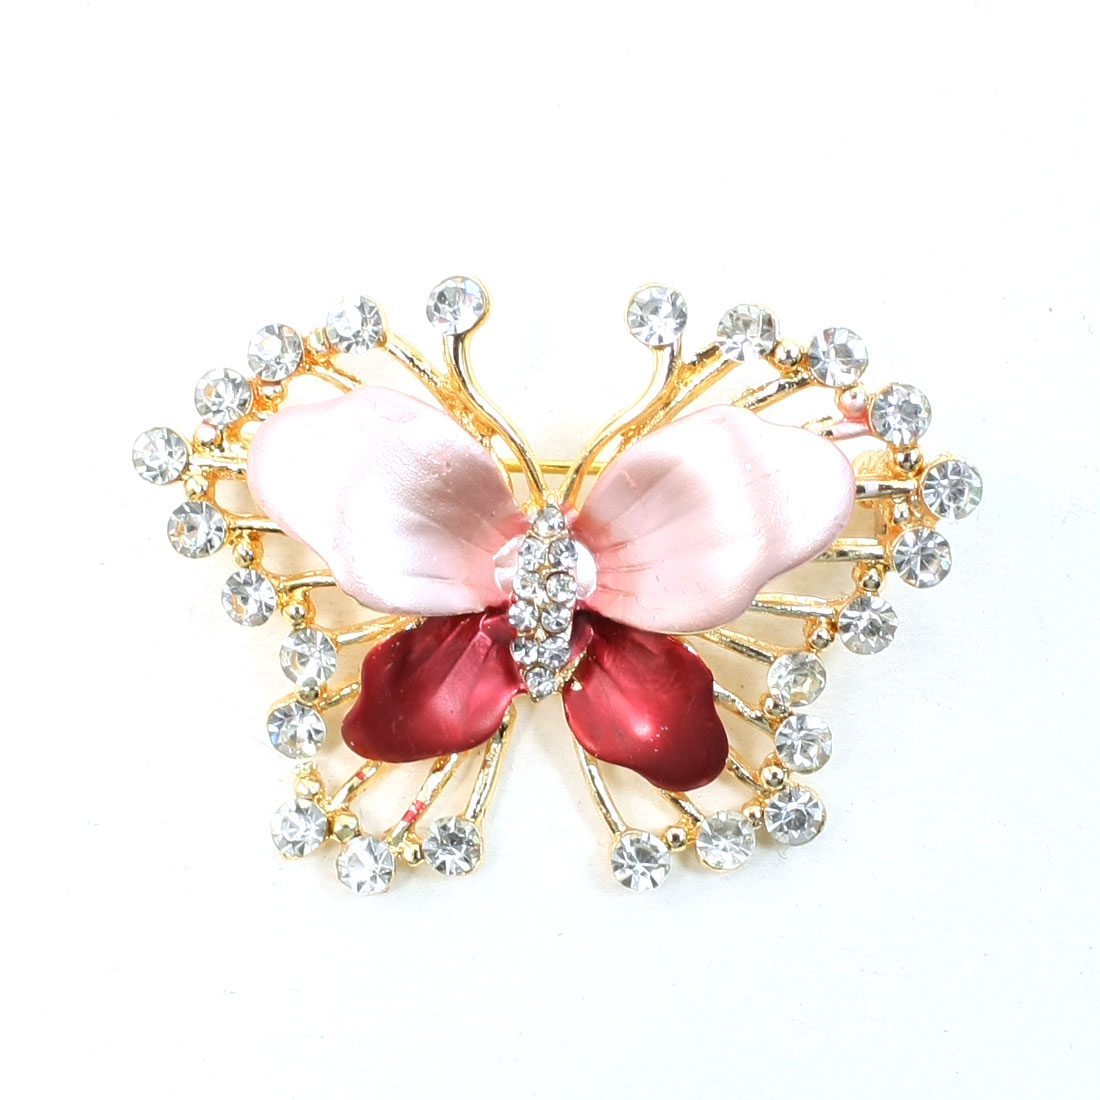 Glittery Rhinestone Decoration Amaranth Butterfly Design Pin Brooch Gift for Lady